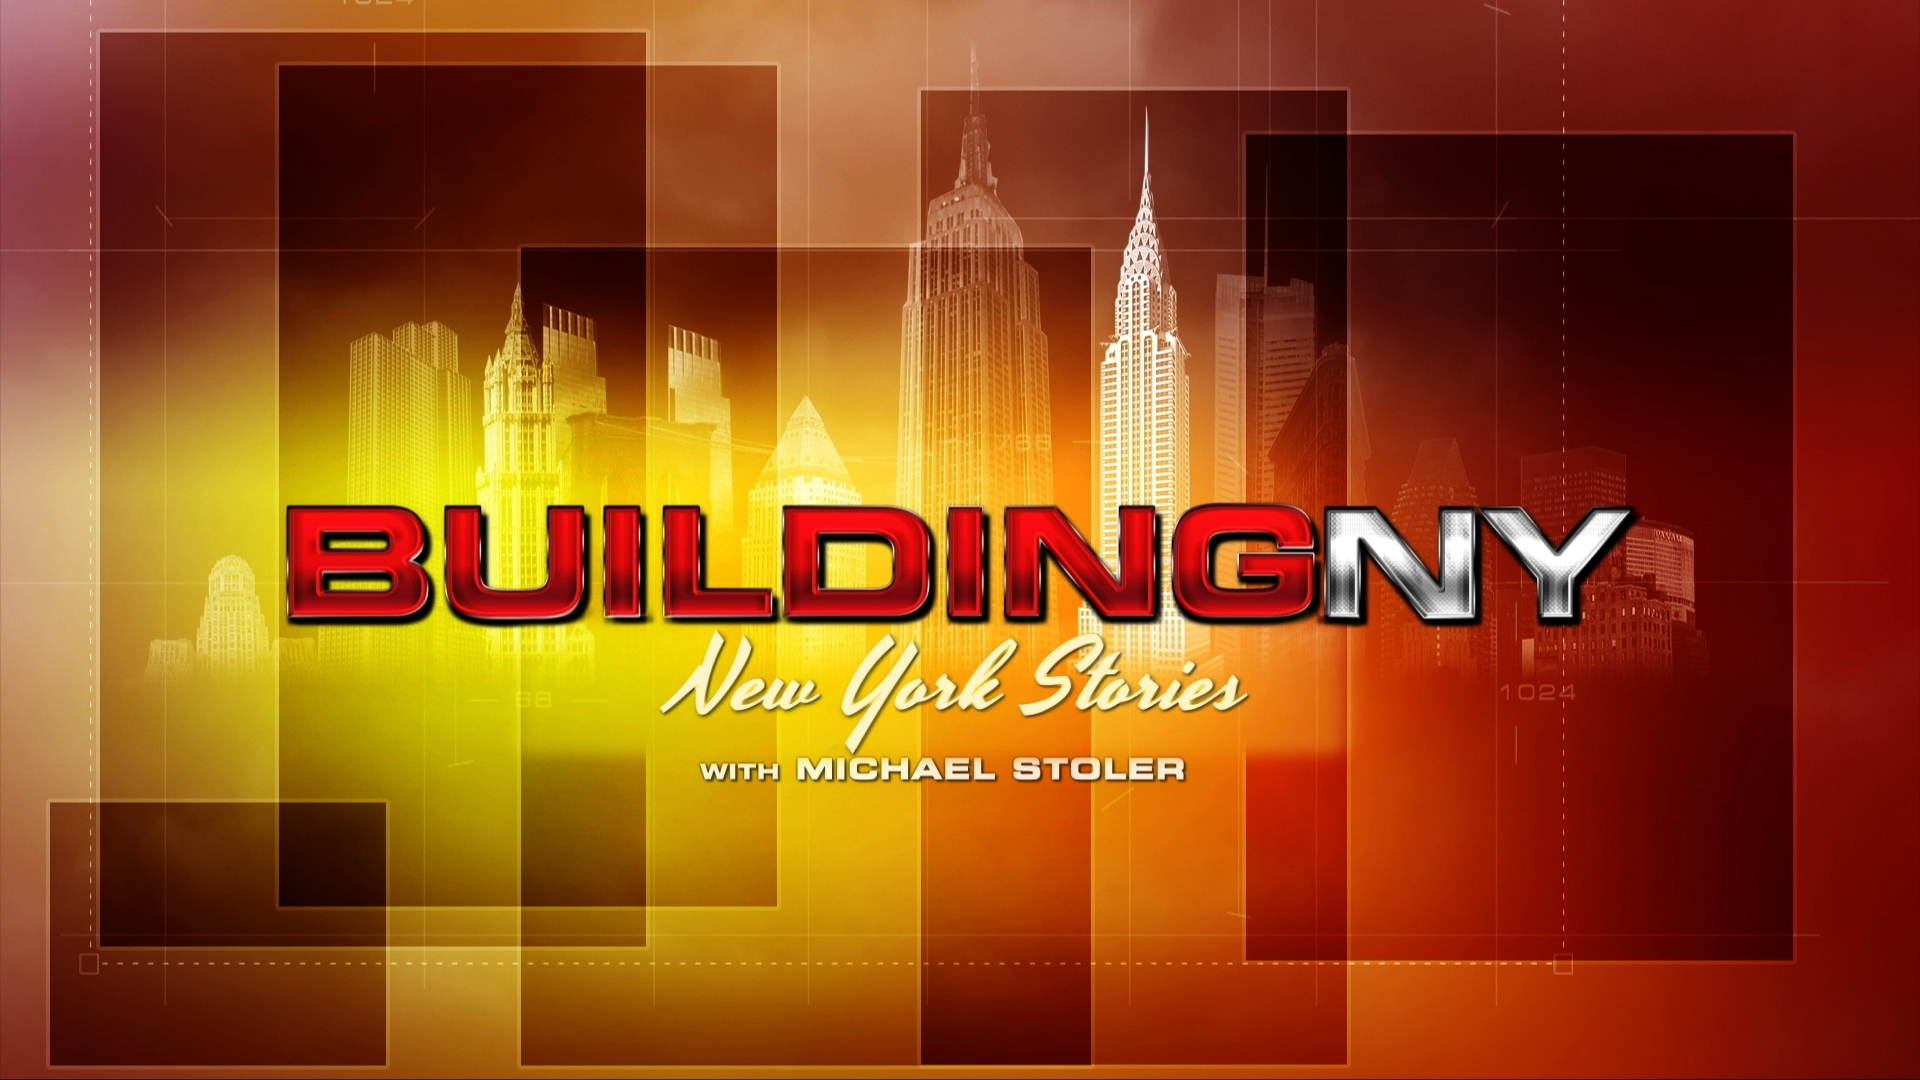 Major Supporters of Building New York: NY Stories  NEW YORK COMMUNITY BANK  CAPITAL ONE BANK  EASTERN CONSOLIDATED  M & T BANK  STERLING NATIONAL BANK  MERIDIAN CAPITAL GROUP  CUSTOMERS BAN  ARIEL PROPERTY ADVISORS  PERFECT BUILDING MAINTENANCE